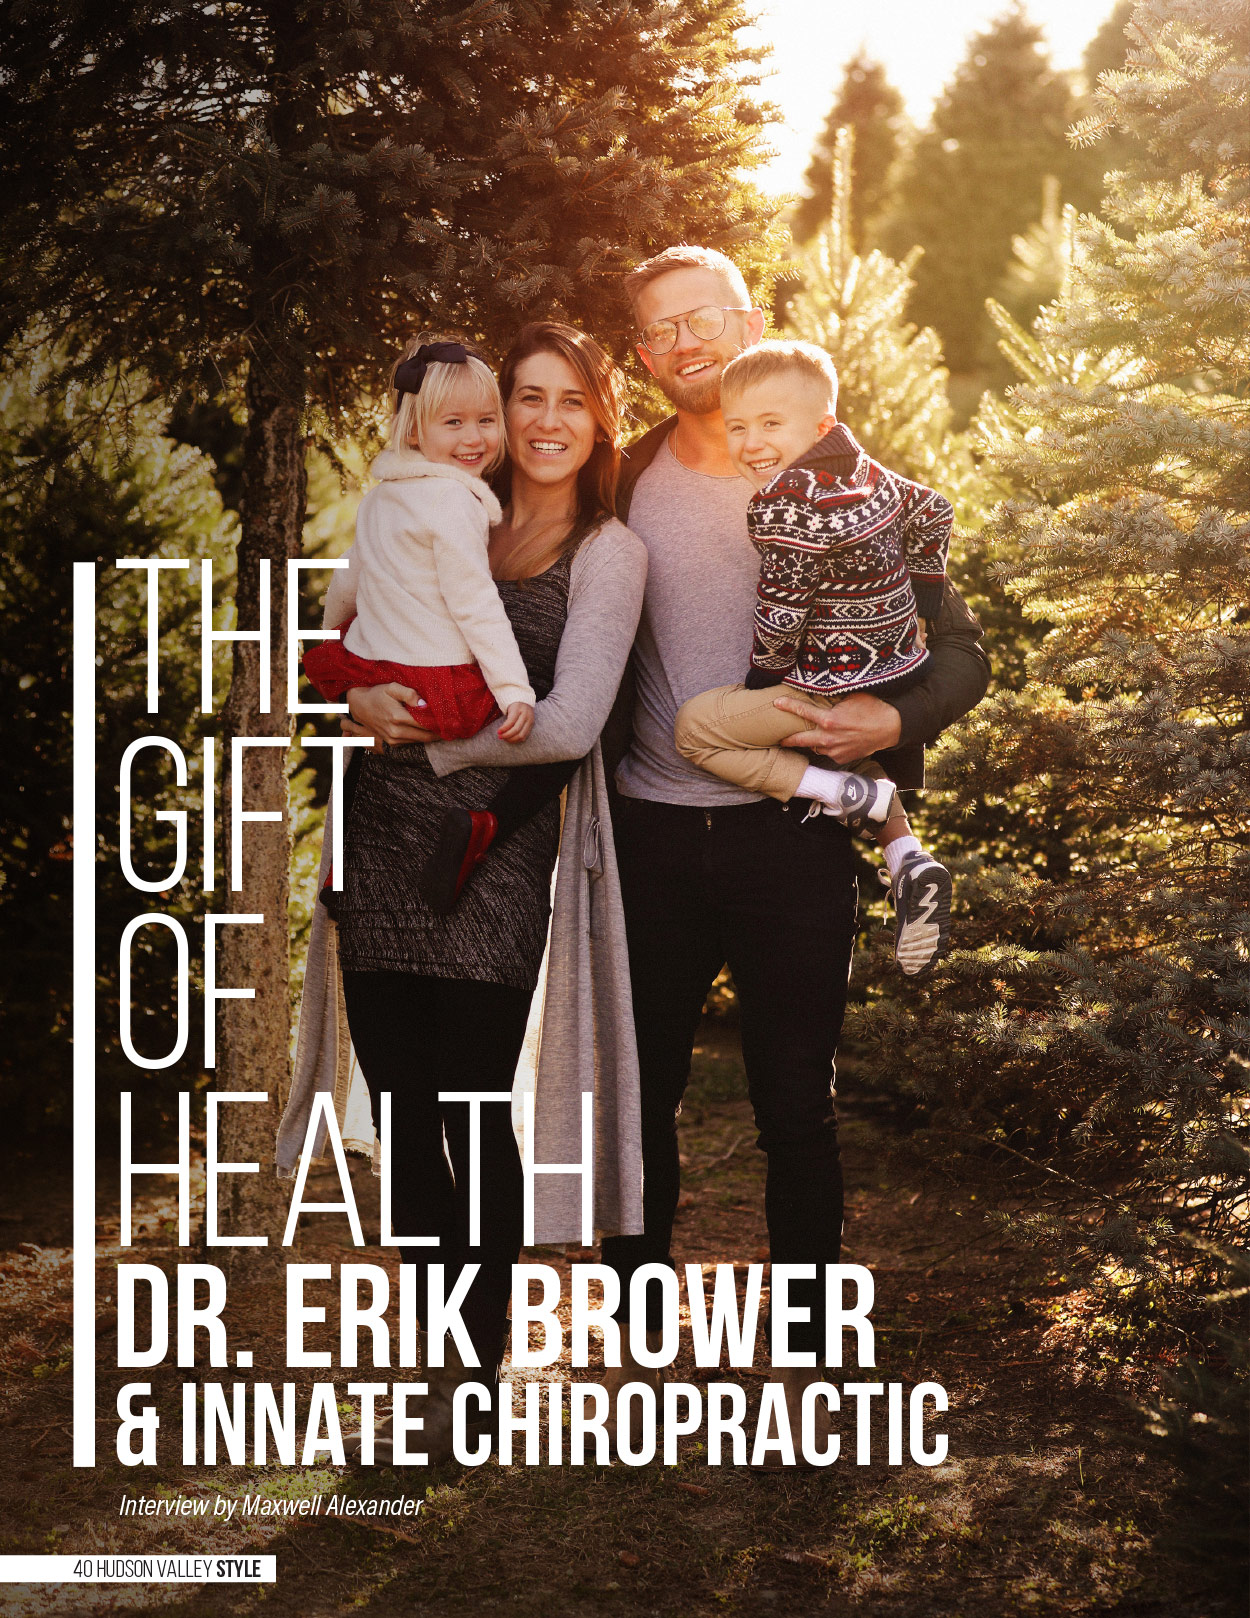 Dr. Erik Brower (Innate Chiropractic) - The Gift of Health - Interview by Maxwell Alexander